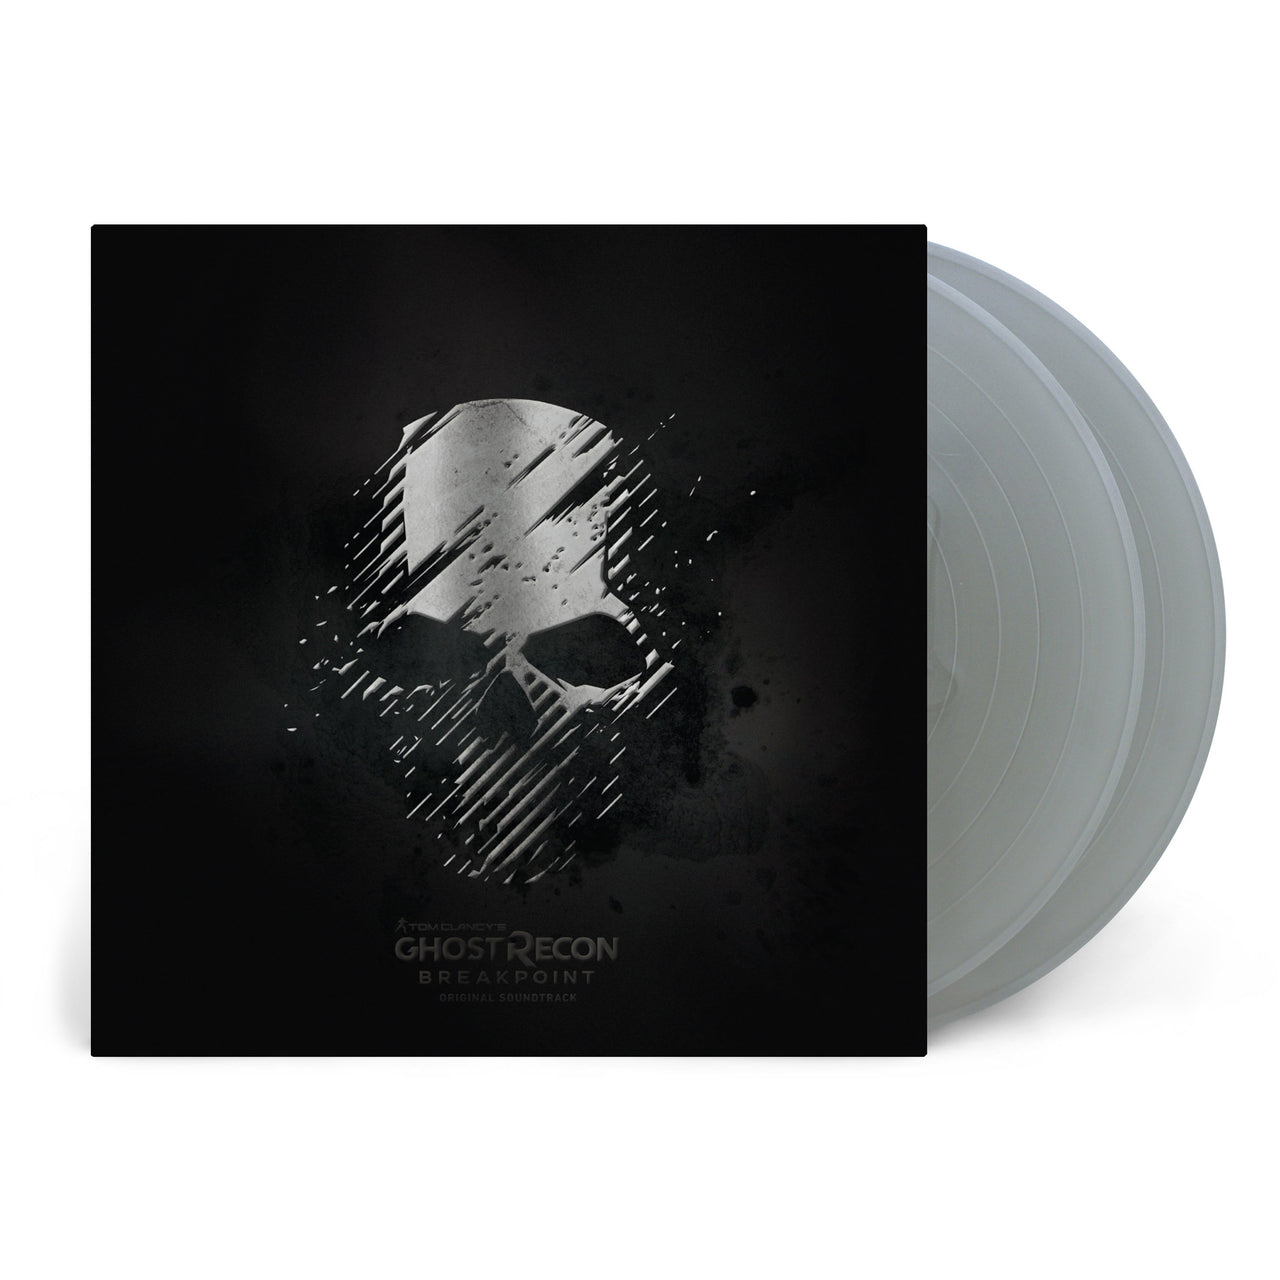 Tom Clancy's Ghost Recon Breakpoint (Deluxe Double Vinyl)